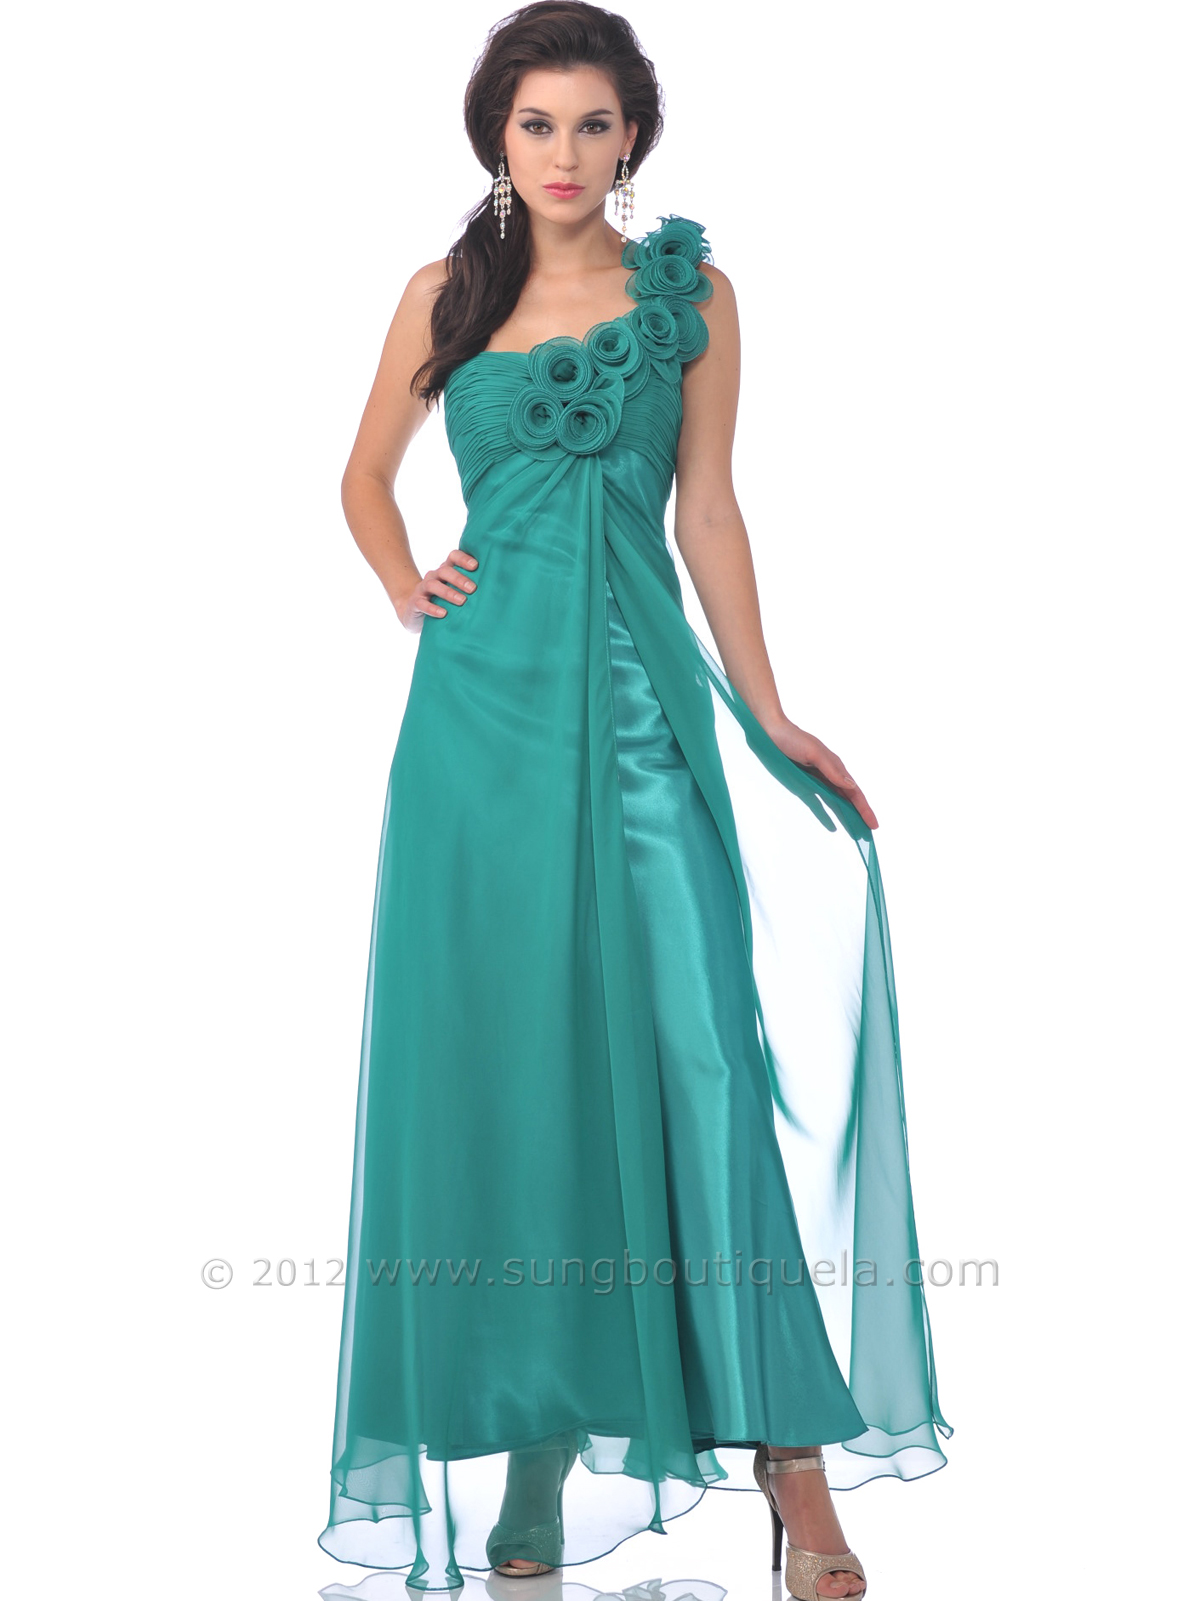 Evening Dress For Sale In Los Angeles